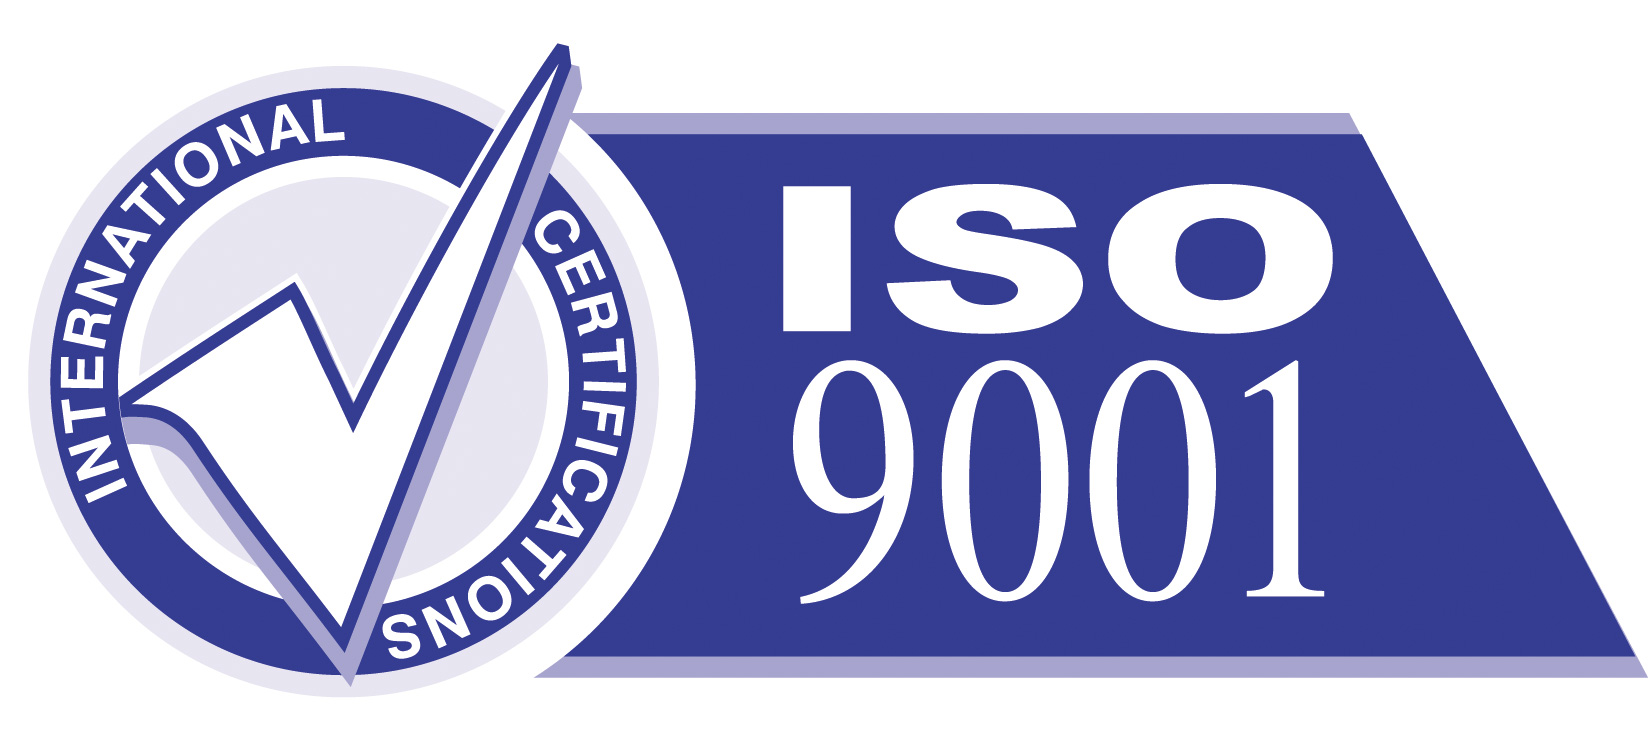 LA VIE EN ROSE, THE FIRST AND ONLY IN SPAIN, WITH THE ISO9001 CERTIFICATION